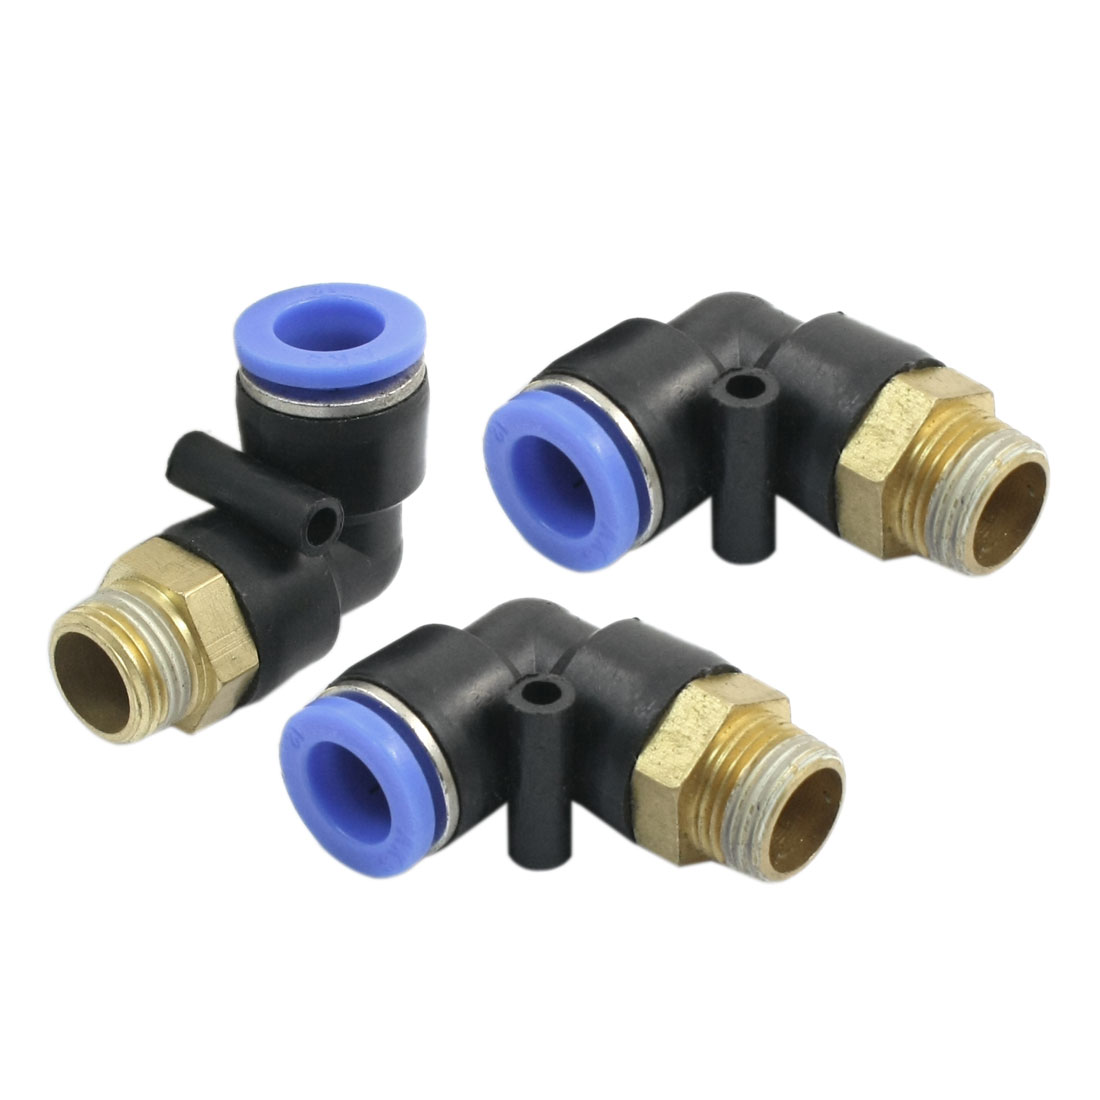 3Pcs 3/8PT Male Thread 12mm to 12mm Two Ways Elbow Connector Pneumatic Quick Fitting Coupler